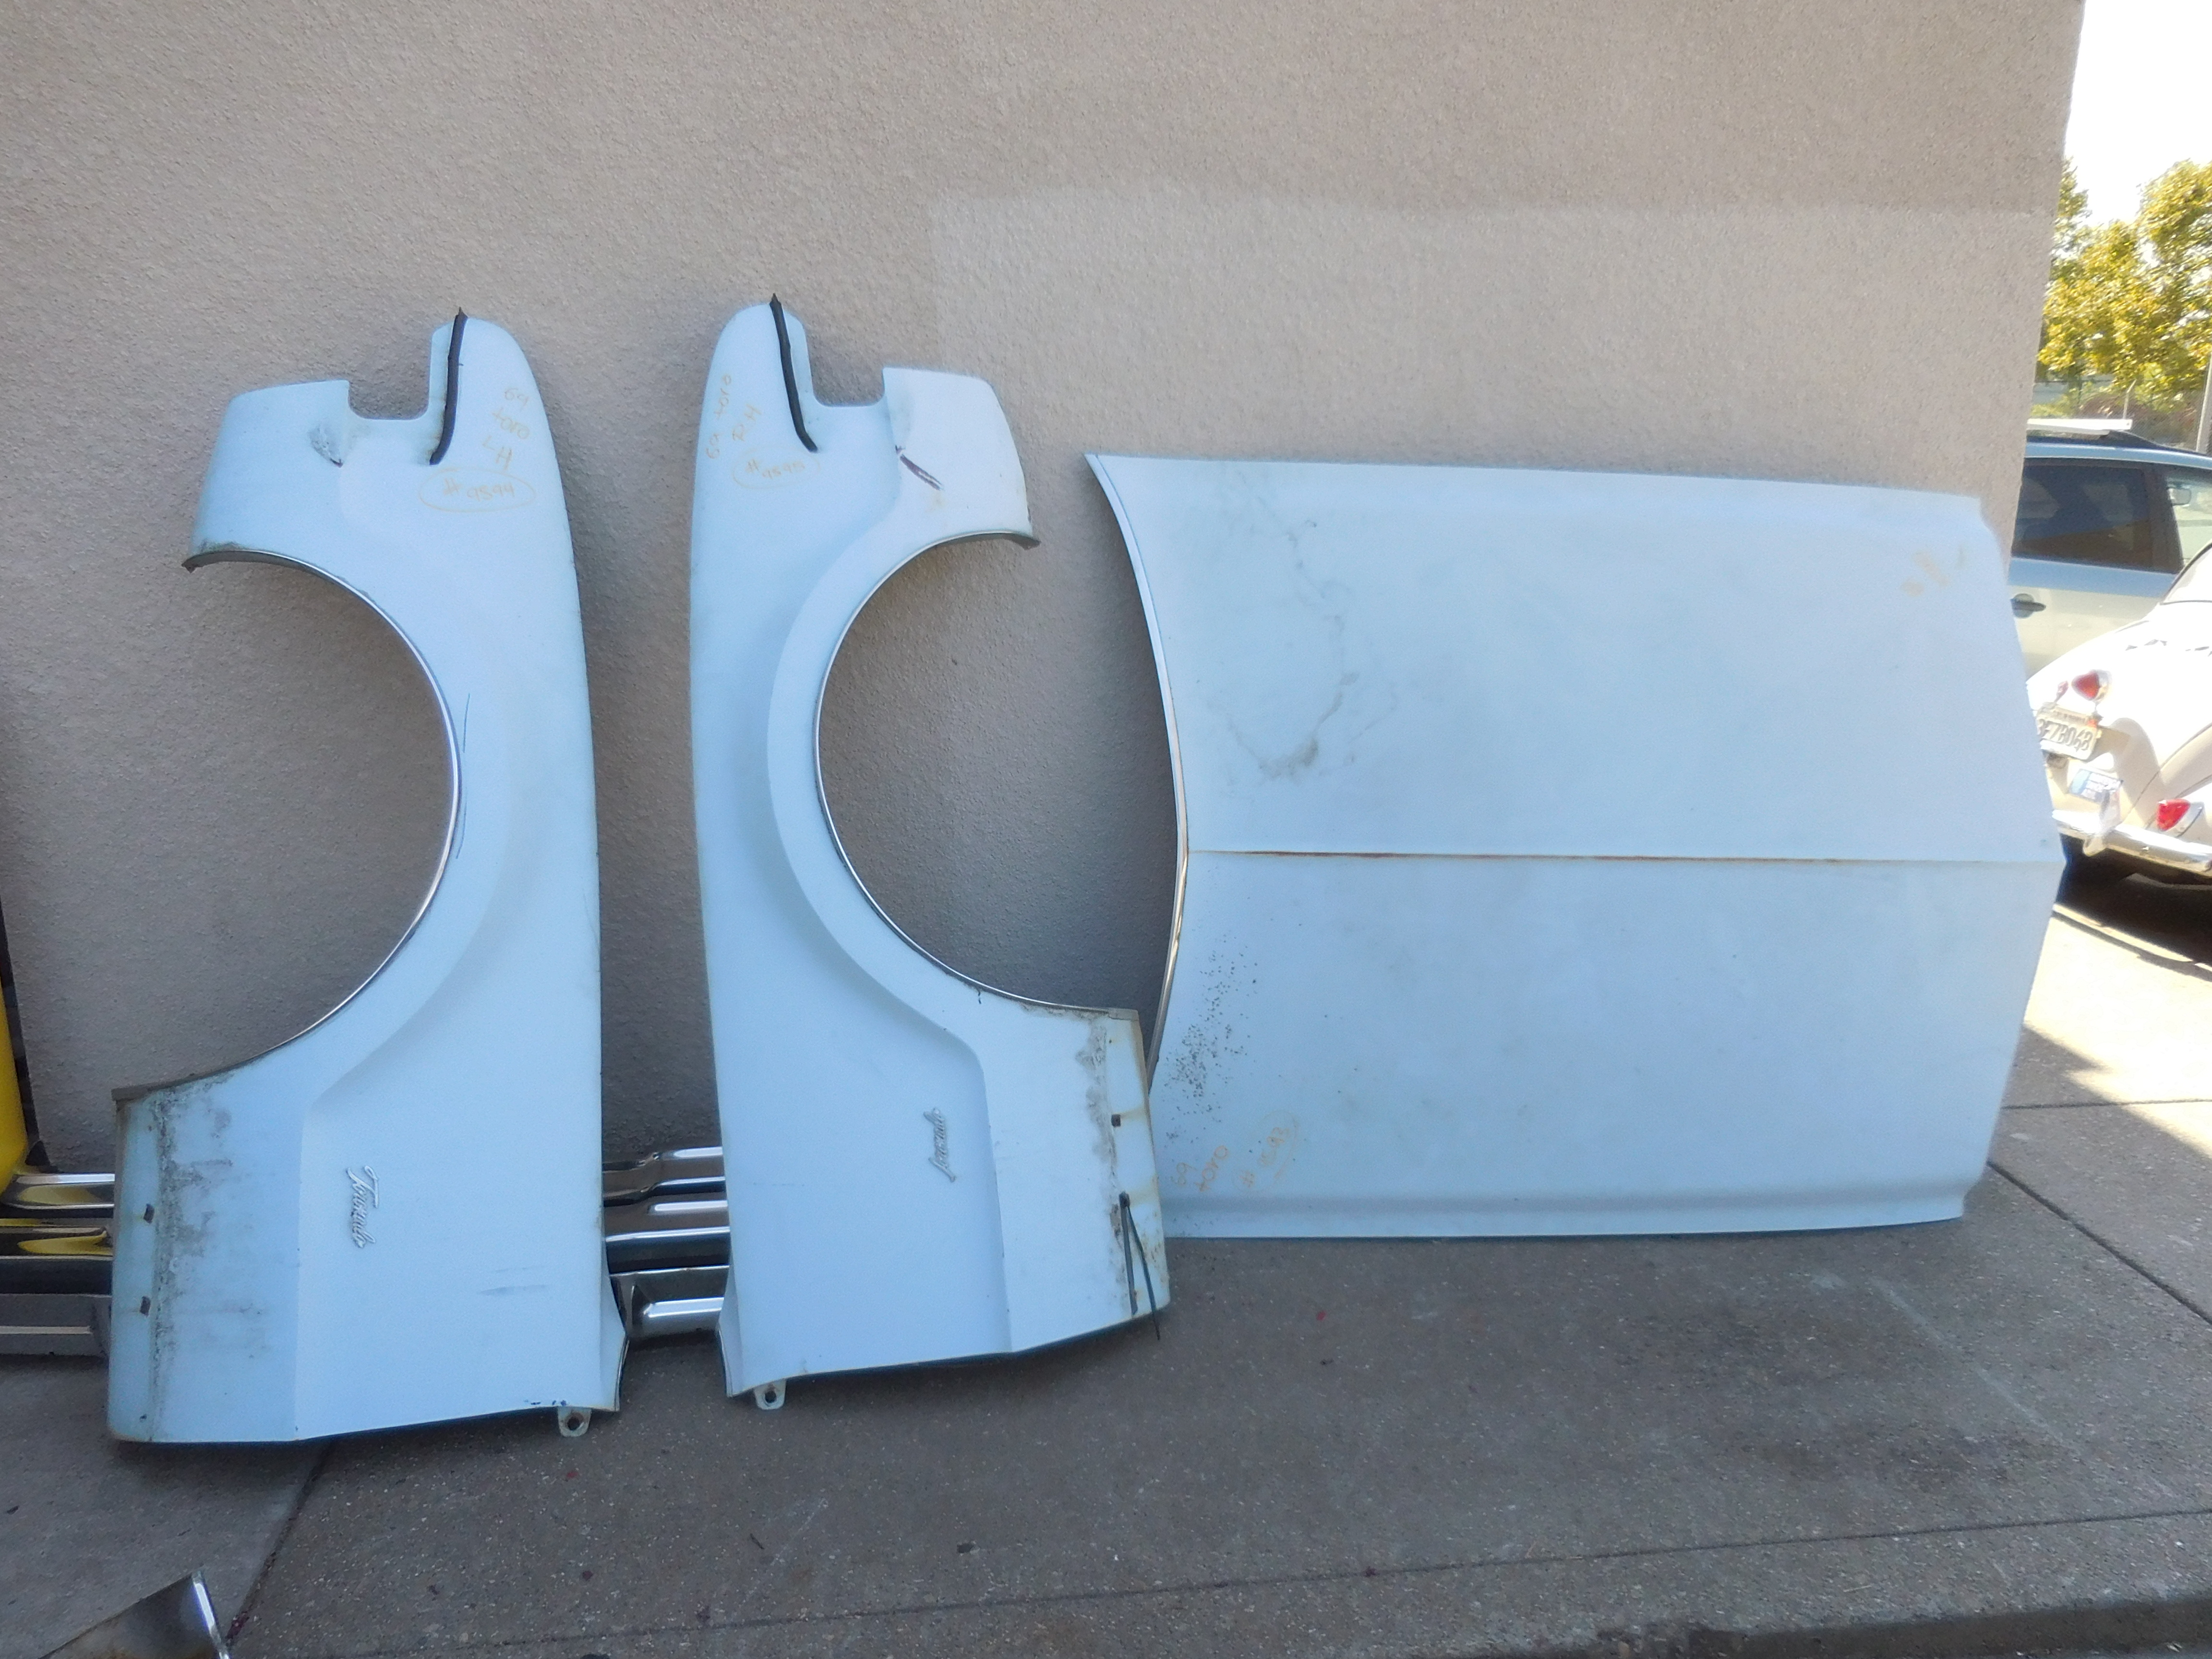 1969 Oldsmobile Toronado Left And Right Fenders And Hood